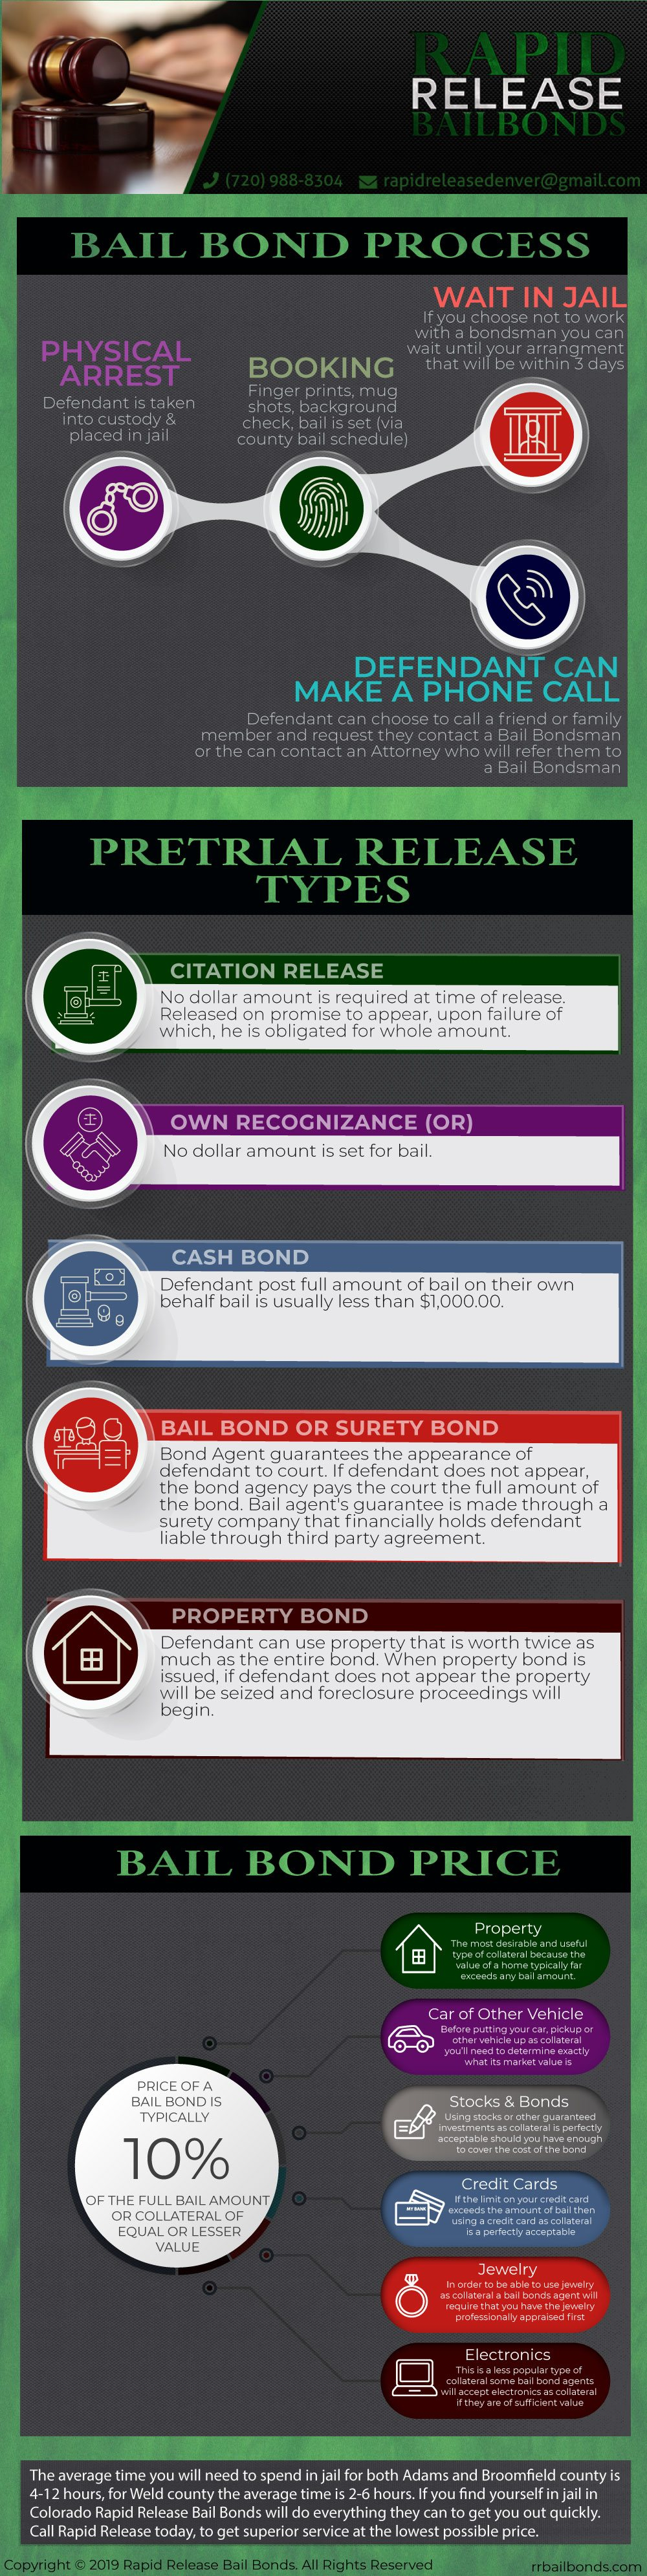 Infographic bail bond process